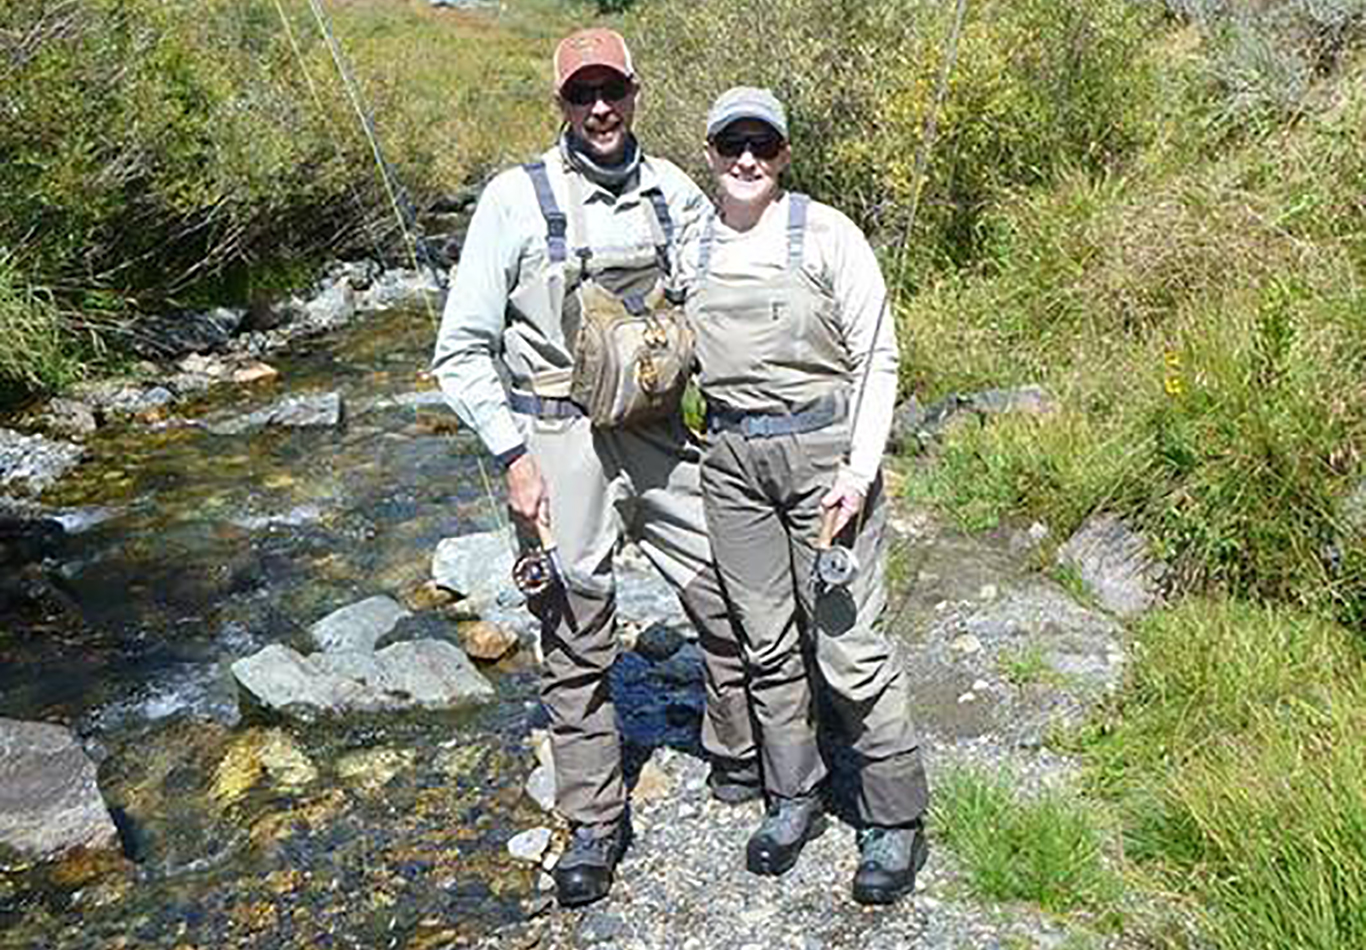 Well-Known Fly Fishing Guides Perish Tragically in Fishing Accident